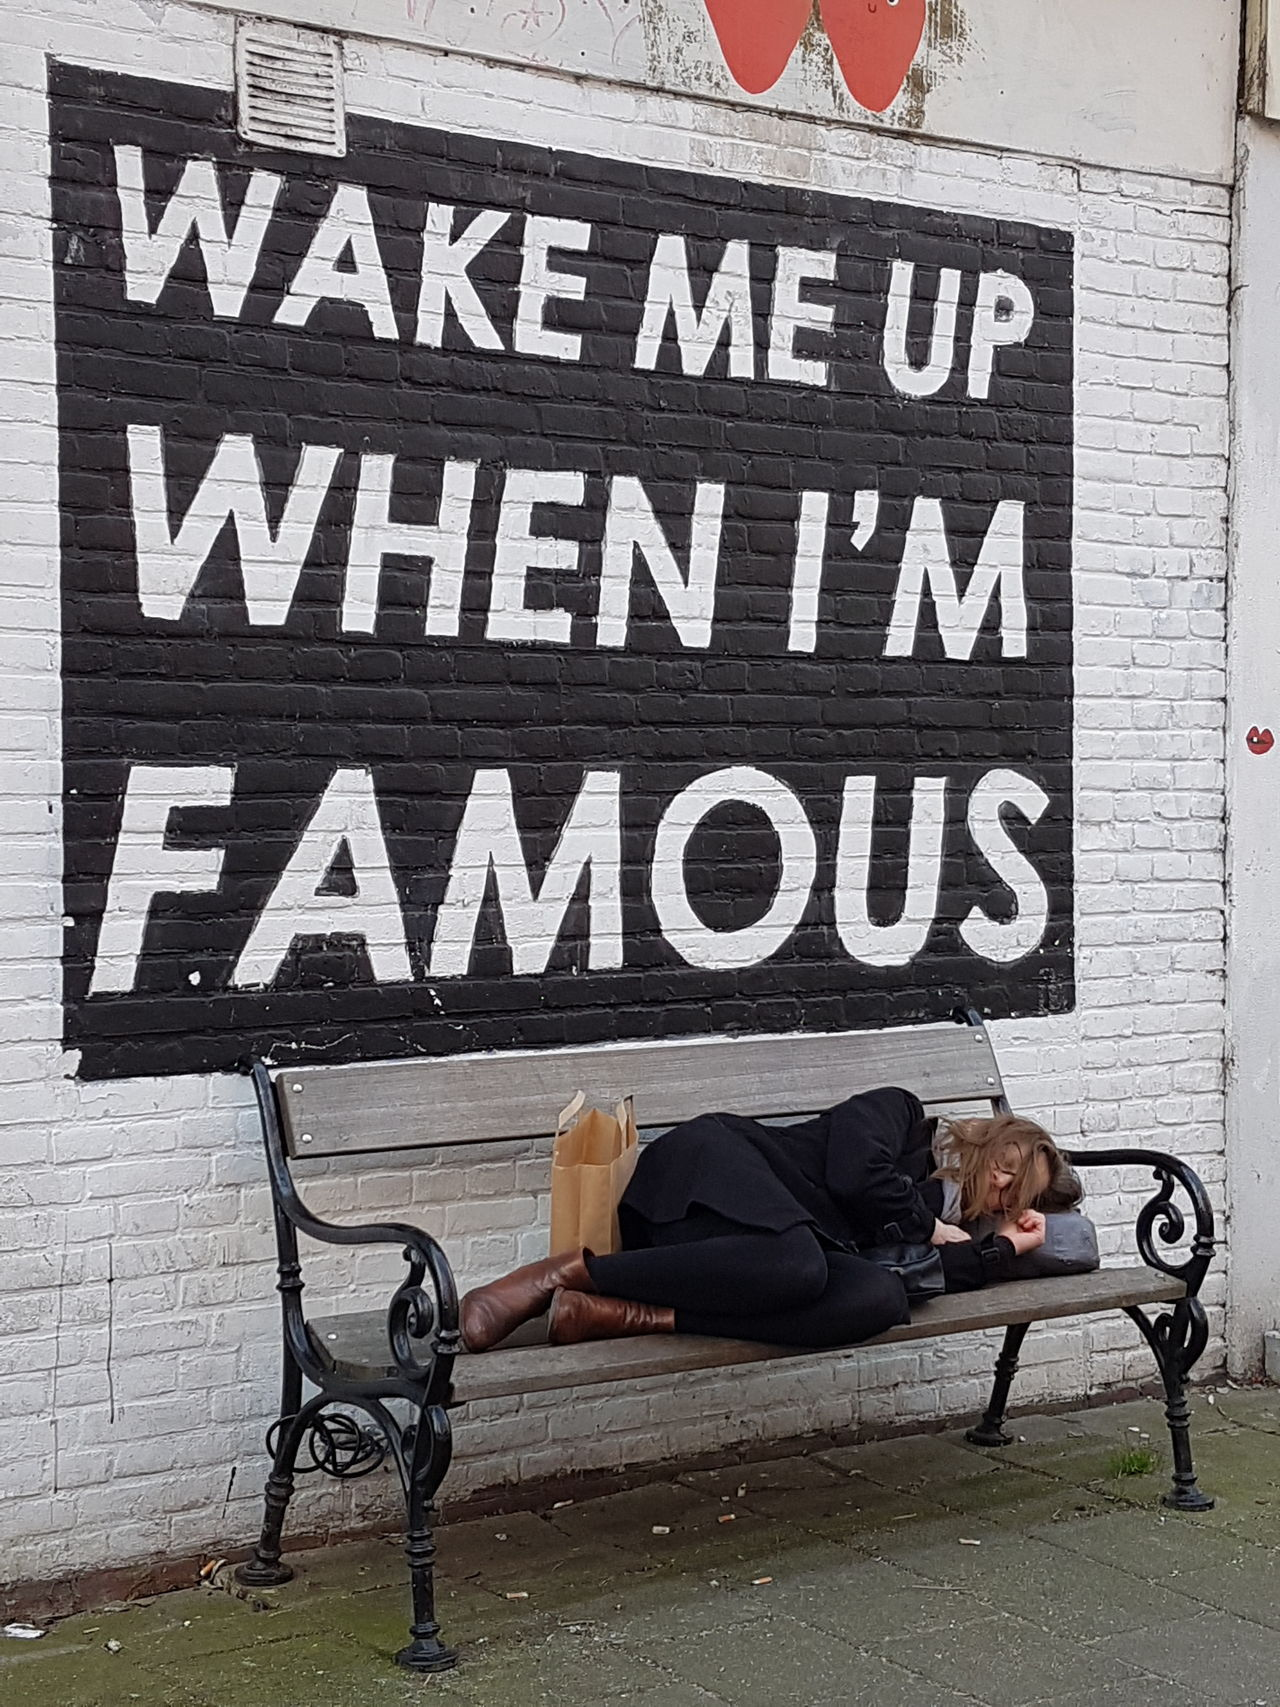 One Person Adults Only Background Cover Sleeping Sleeping Time Wake Up Wake Me Up Famous Place Famous Famous City Famous Places Sleep Bench Seat Bench Benchporn Bench Collection Benches City Life